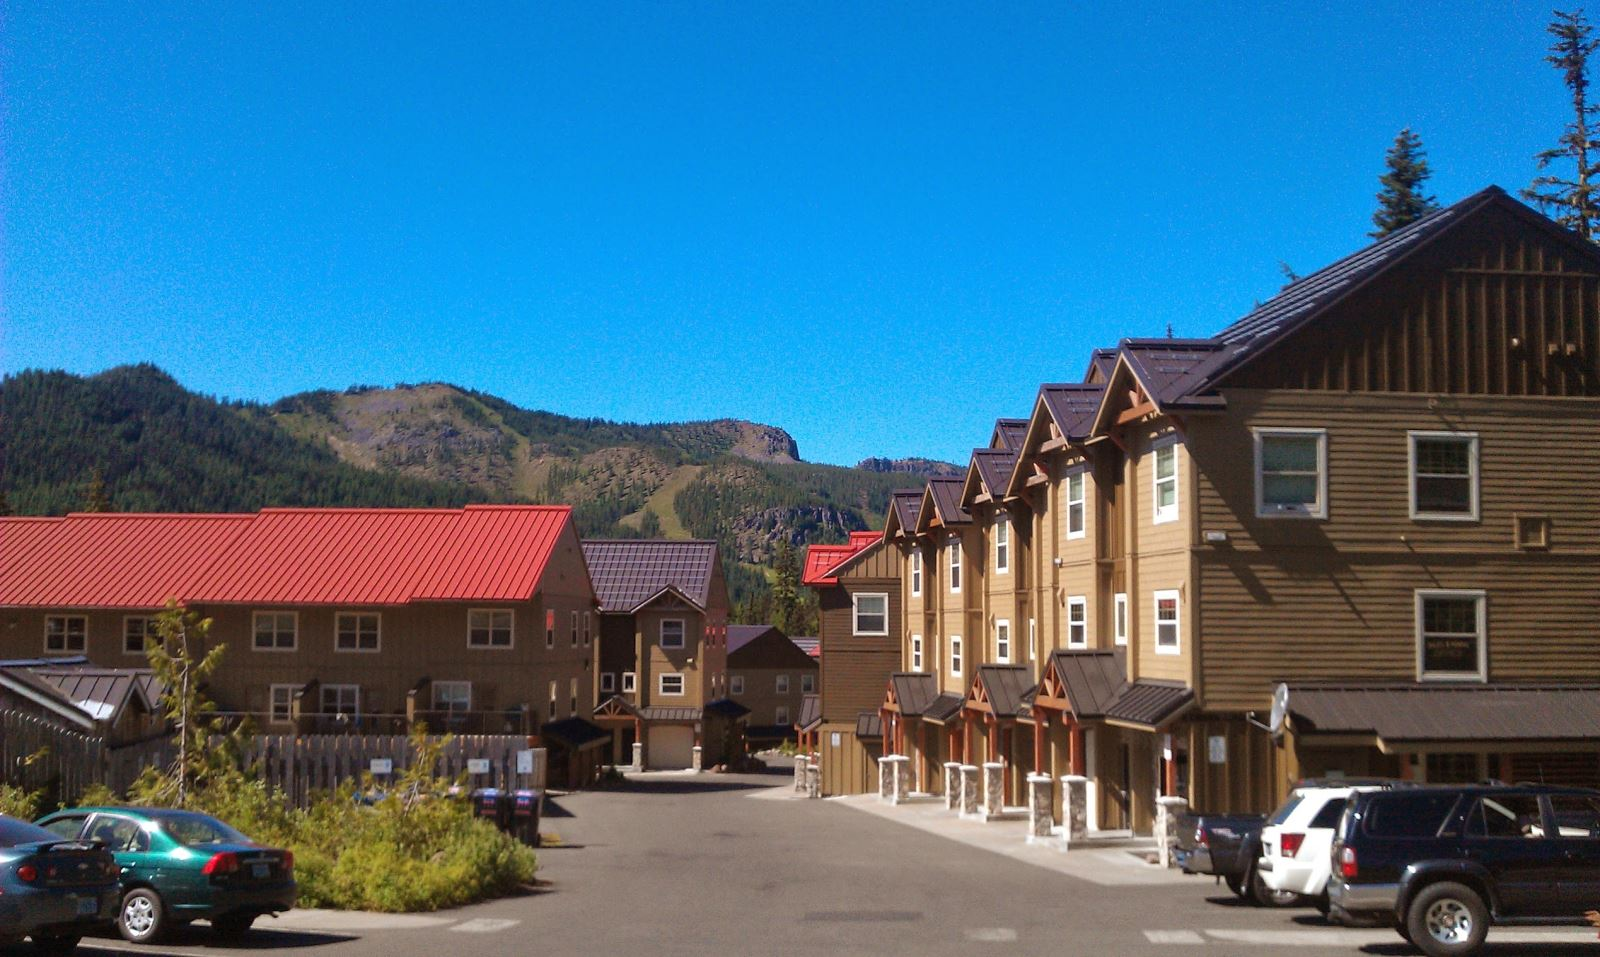 Collins Lake Resort Condos in Government Camp, Oregon